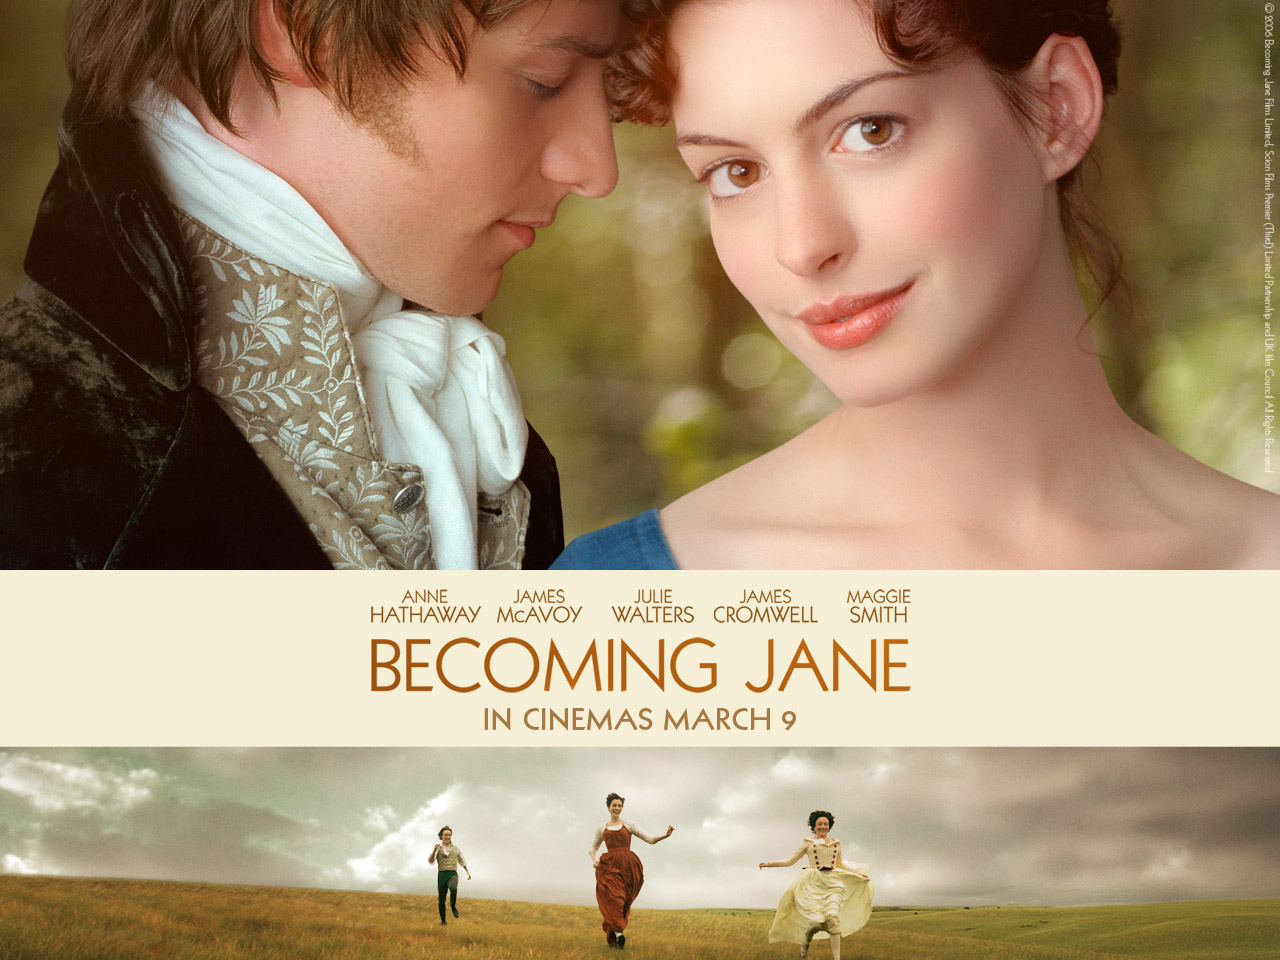 Becoming Jane - James McAvoy Wallpaper (240918) - Fanpop